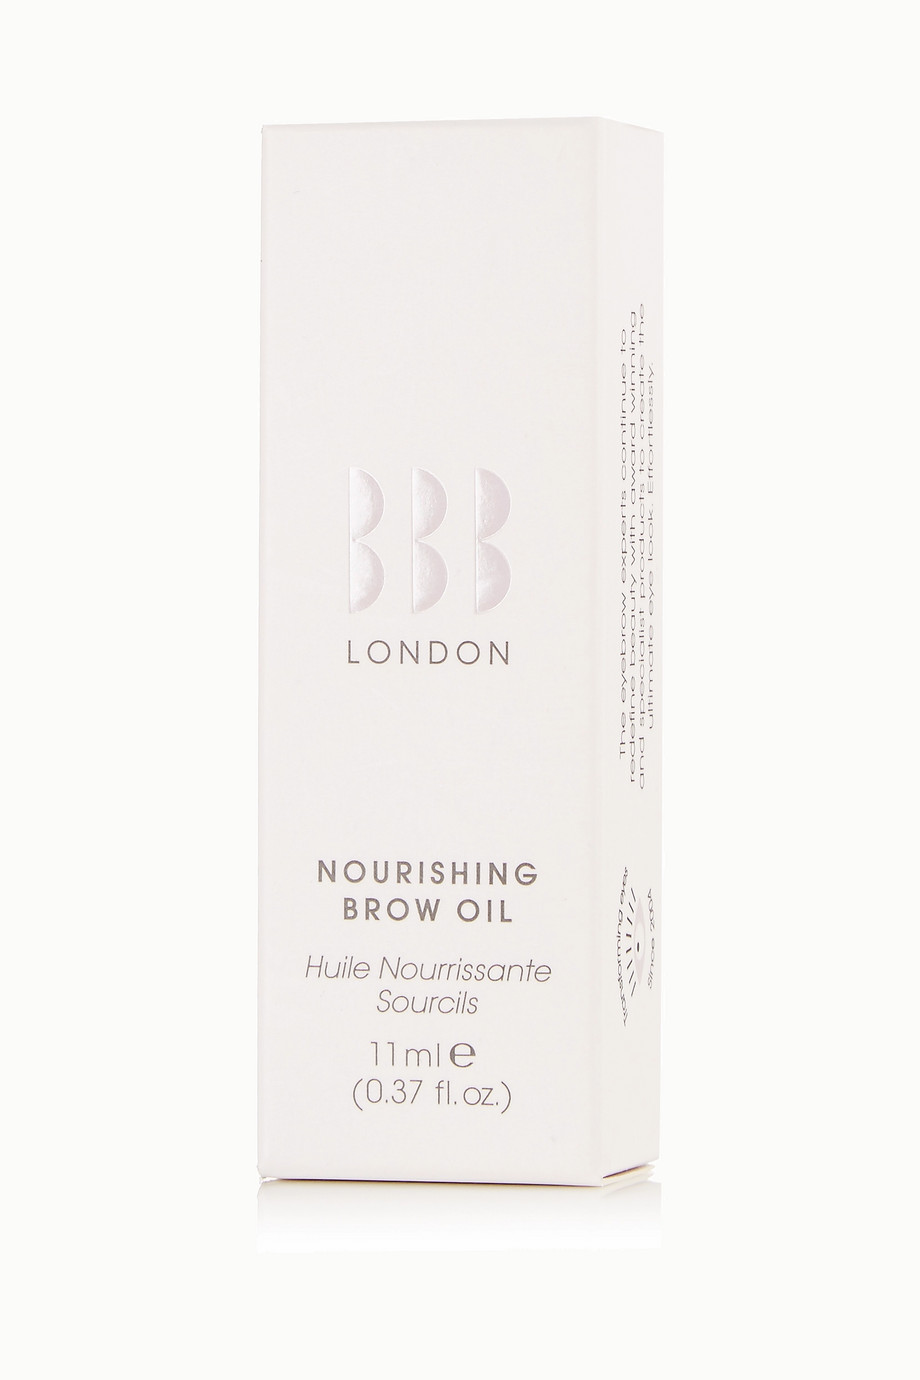 BBB LONDON Nourishing Brow Oil, 11ml